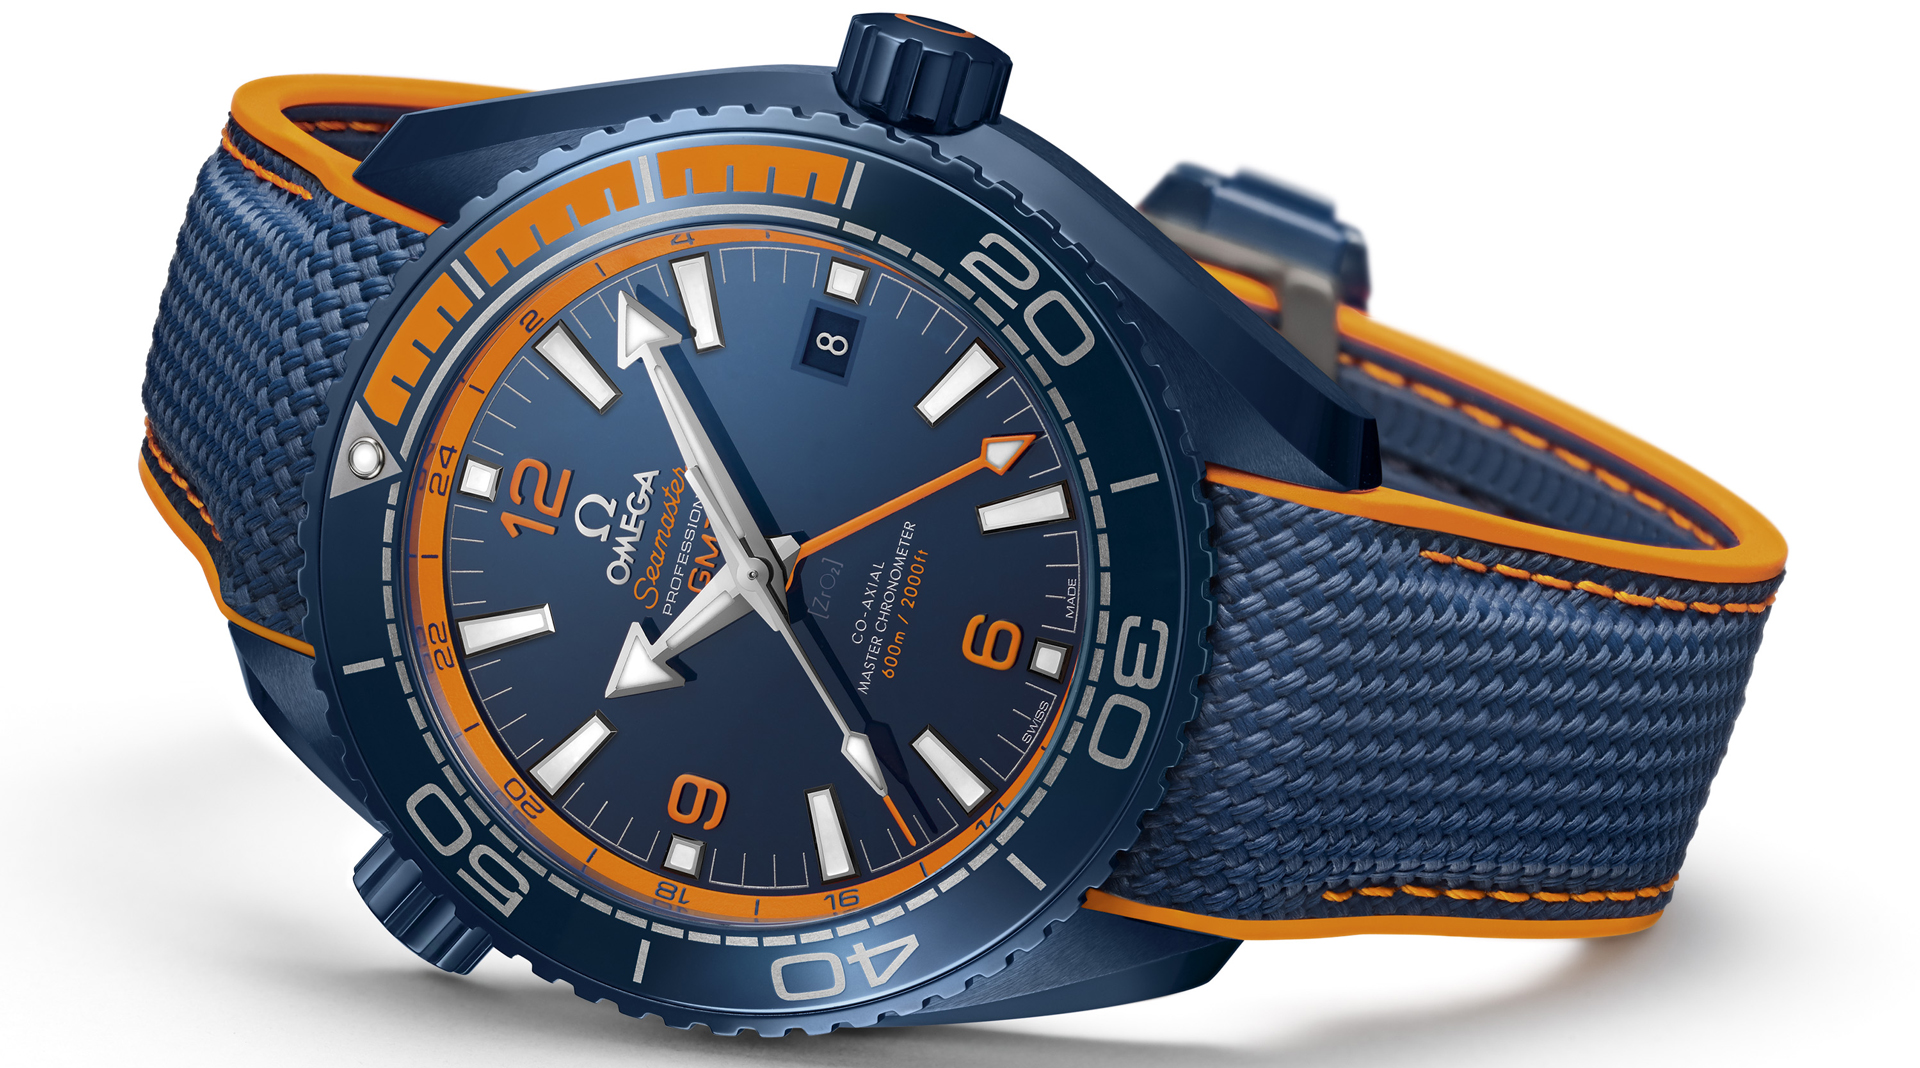 Omega Seamaster Planet Ocean Big Blue side